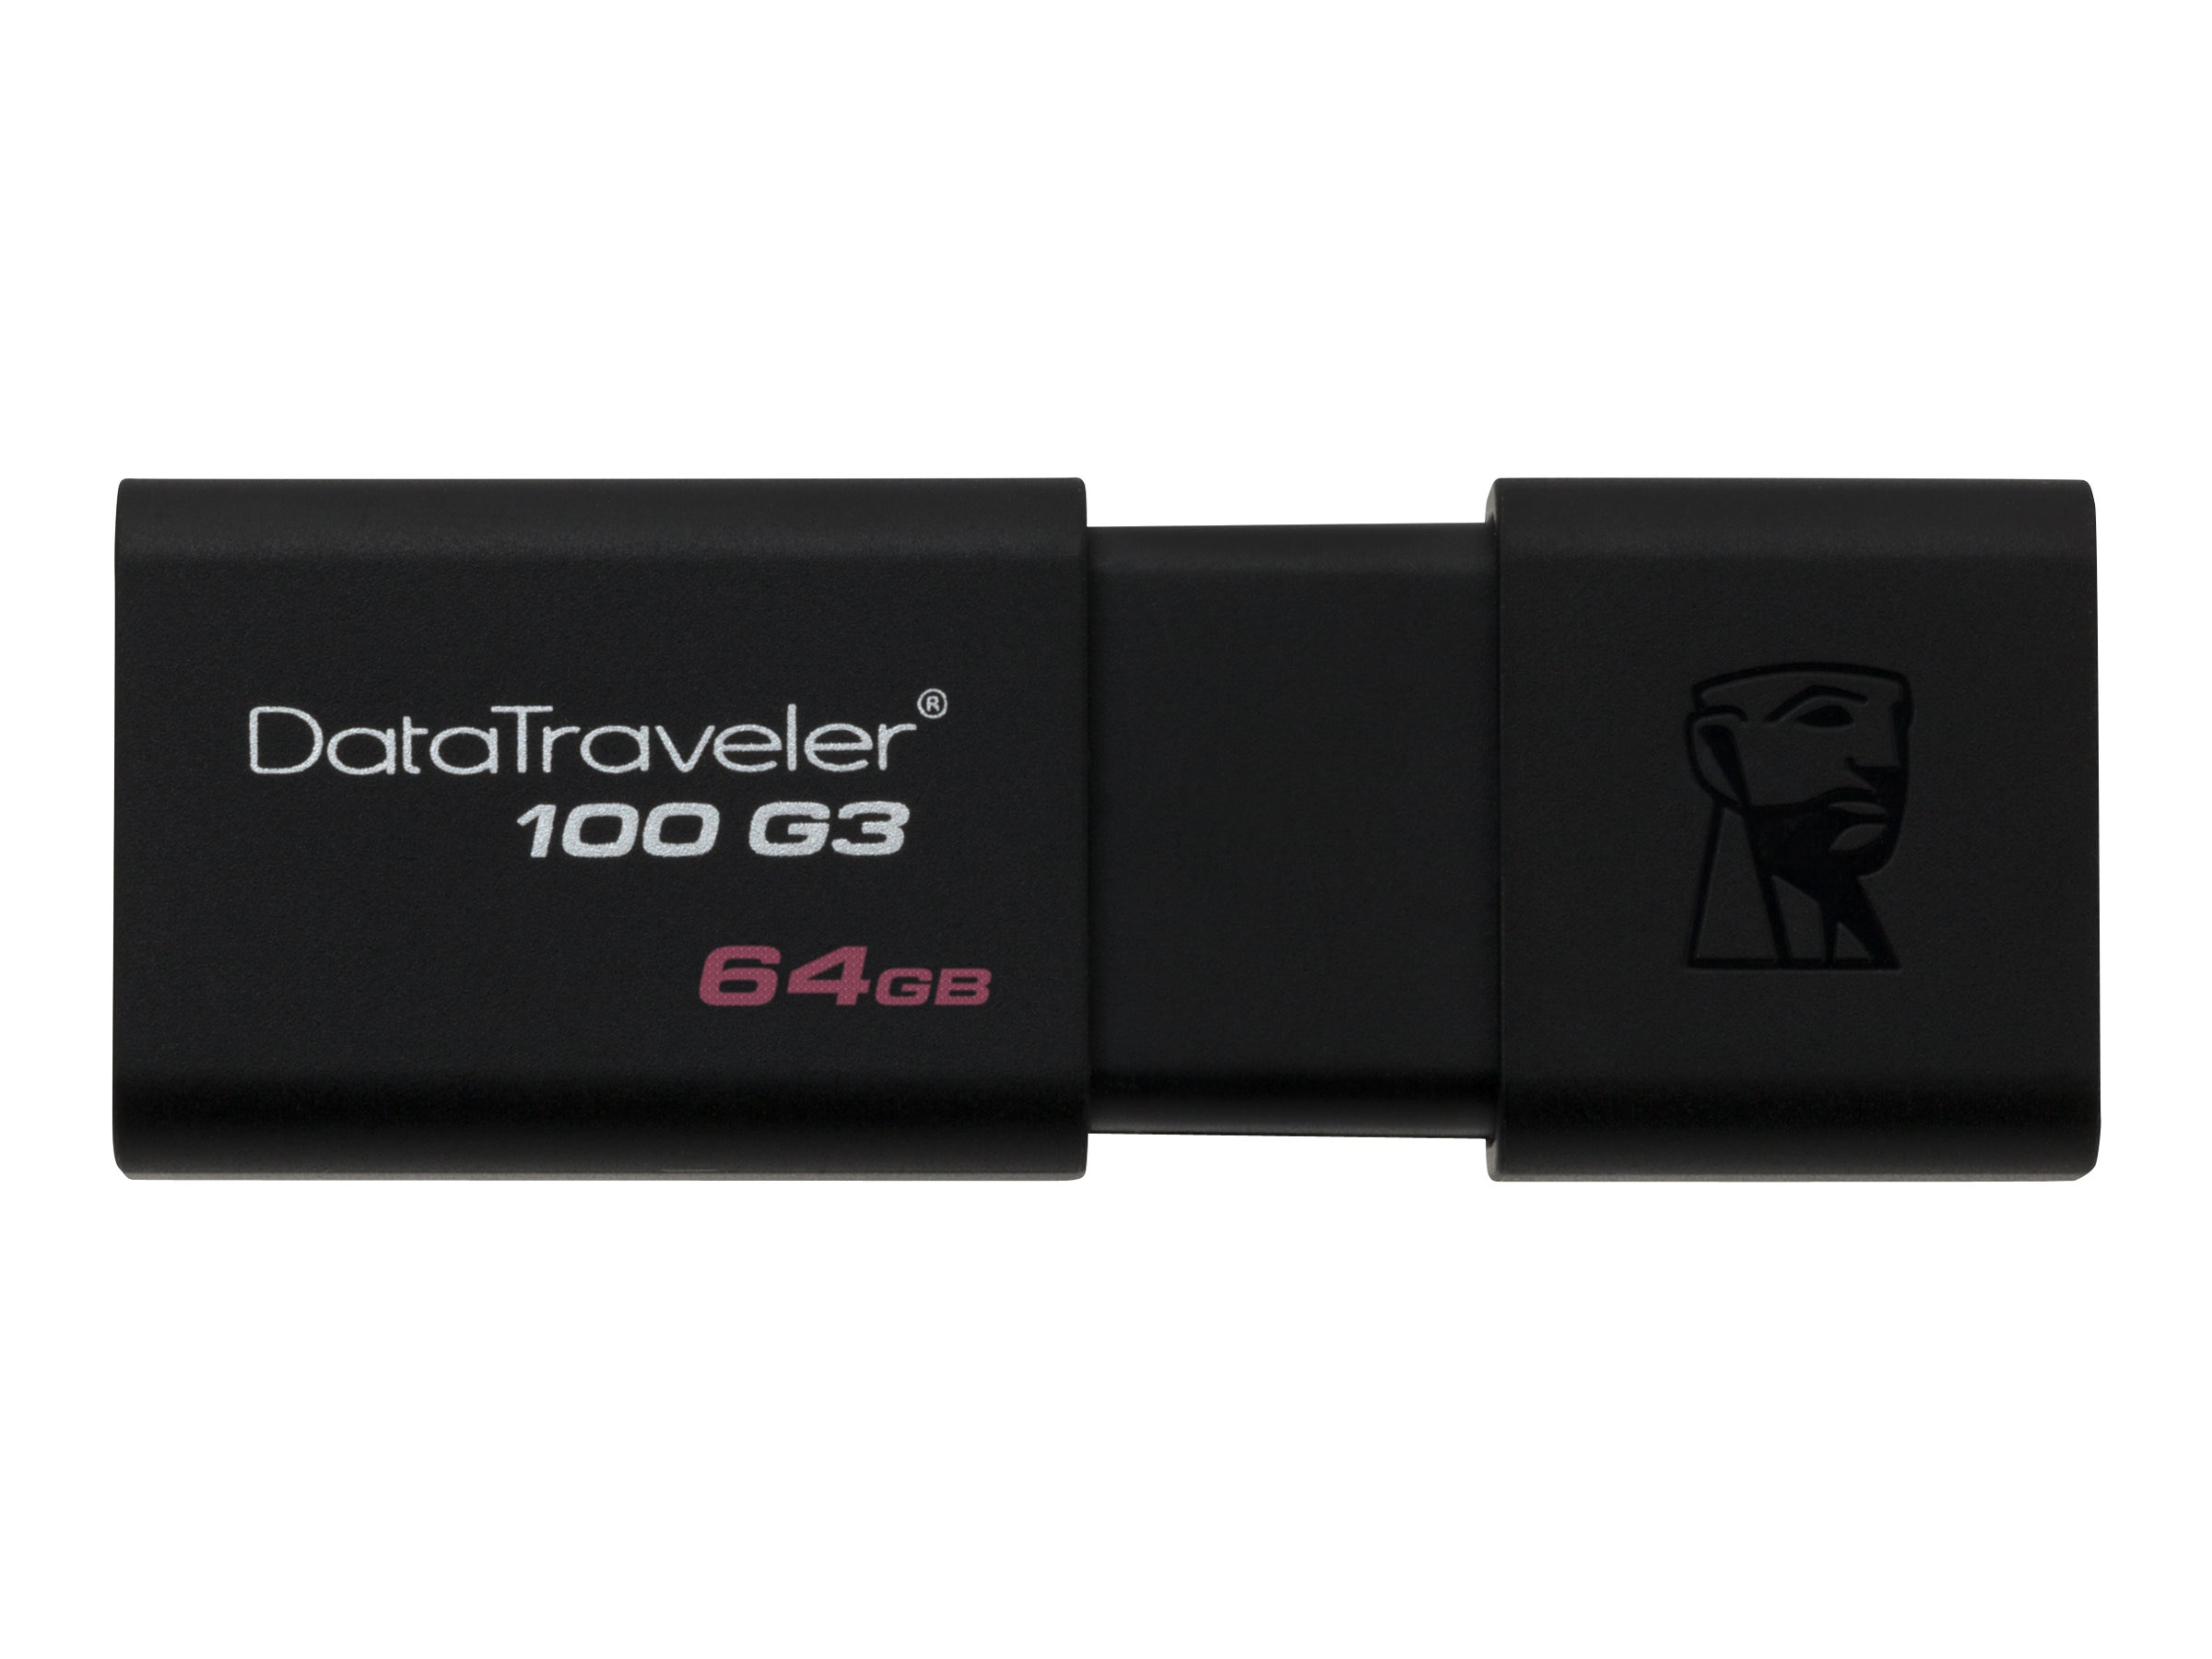 Kingston DT100G3/64GB Image 2